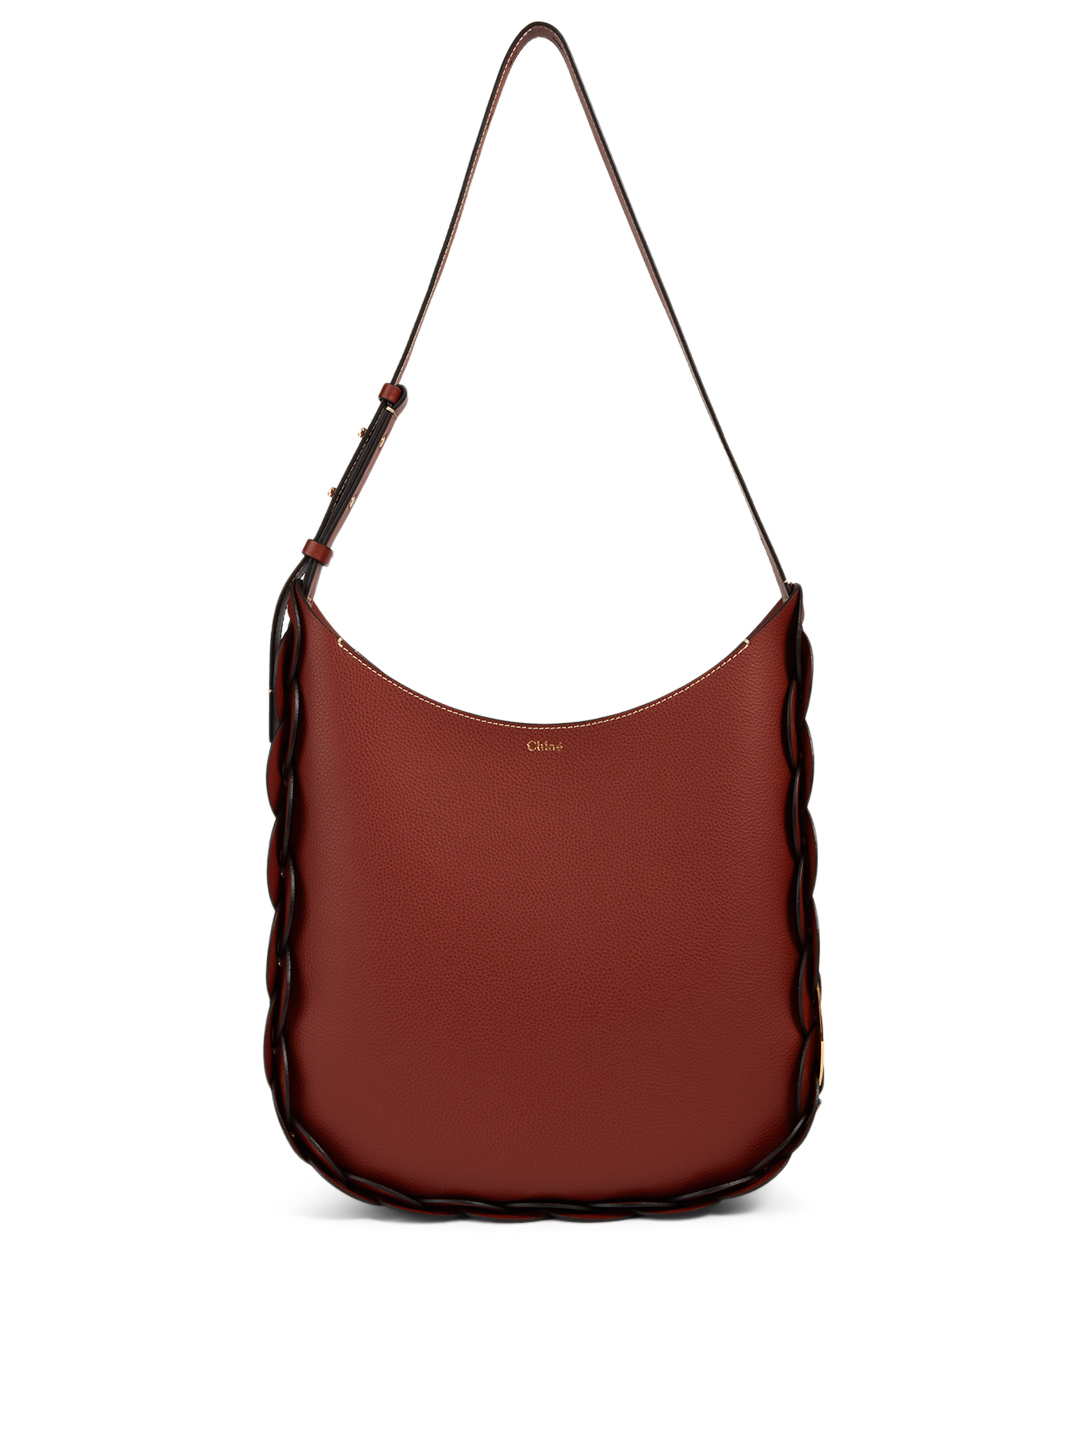 CHLOÉ Medium Darryl Leather Hobo Bag Women's Brown